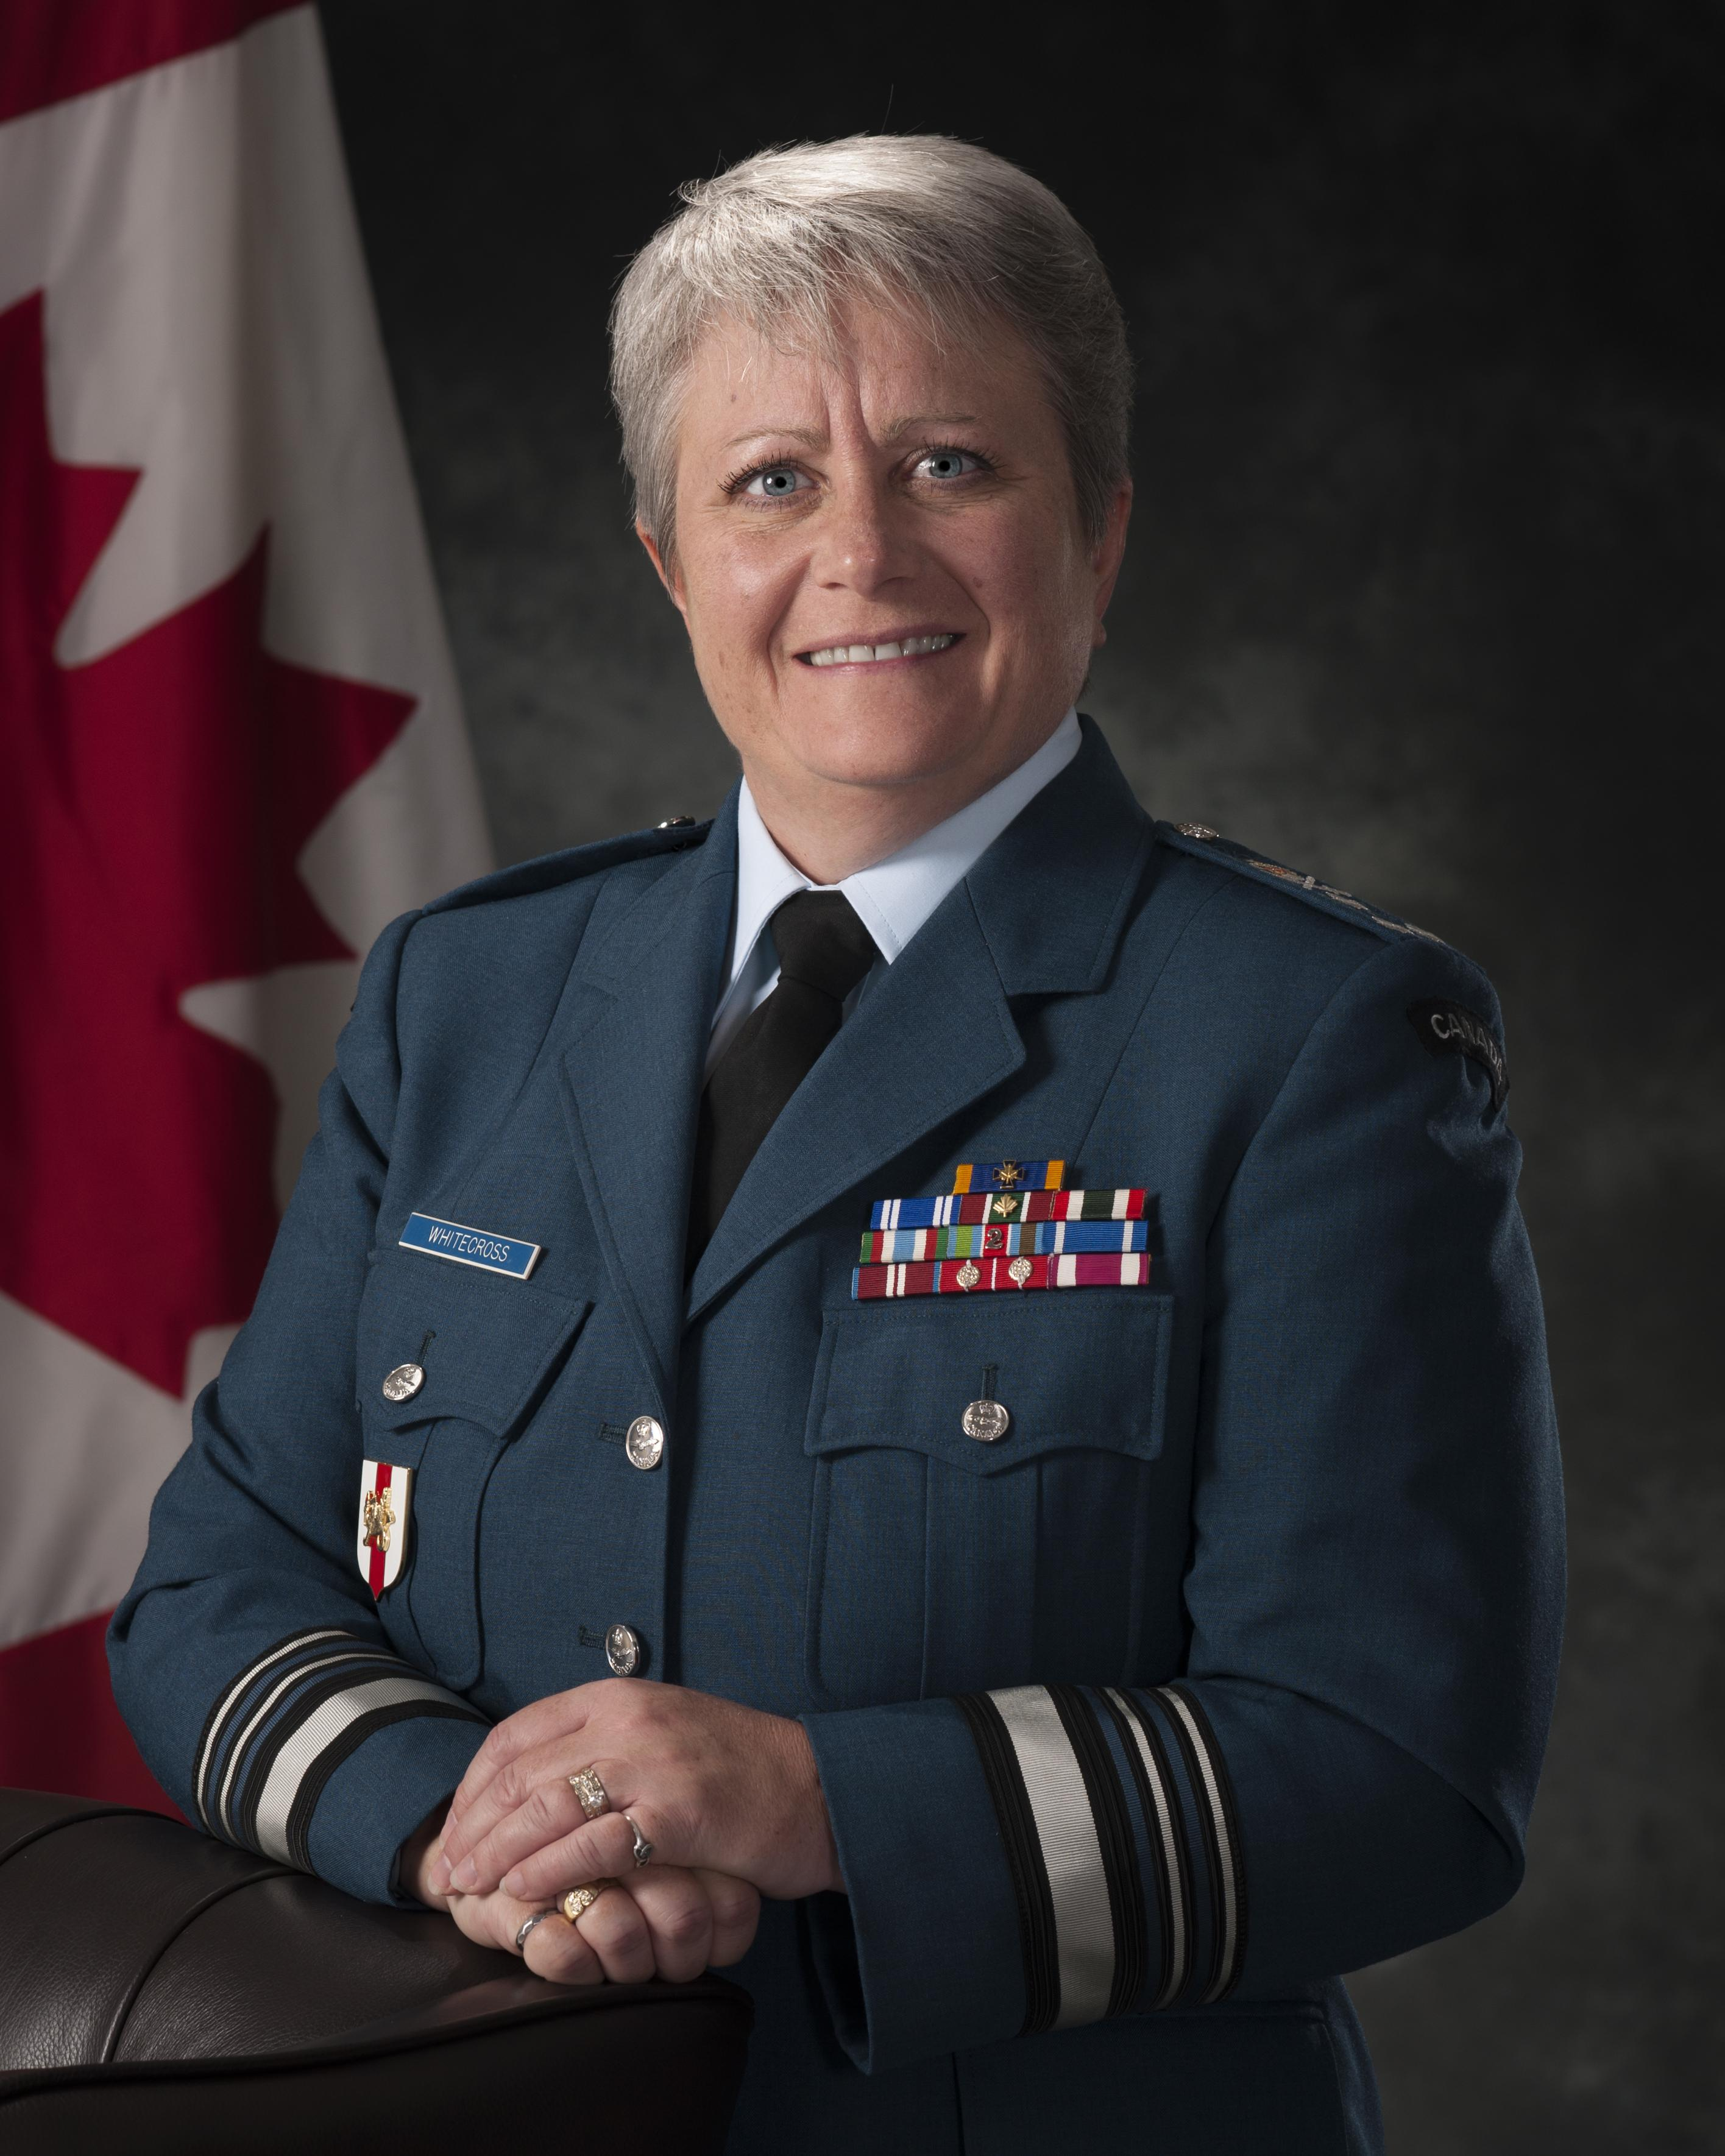 women and the canadian armed forces Canadian women have played an important role in our country's military efforts  over the years, overcoming many barriers to serve in uniform as.